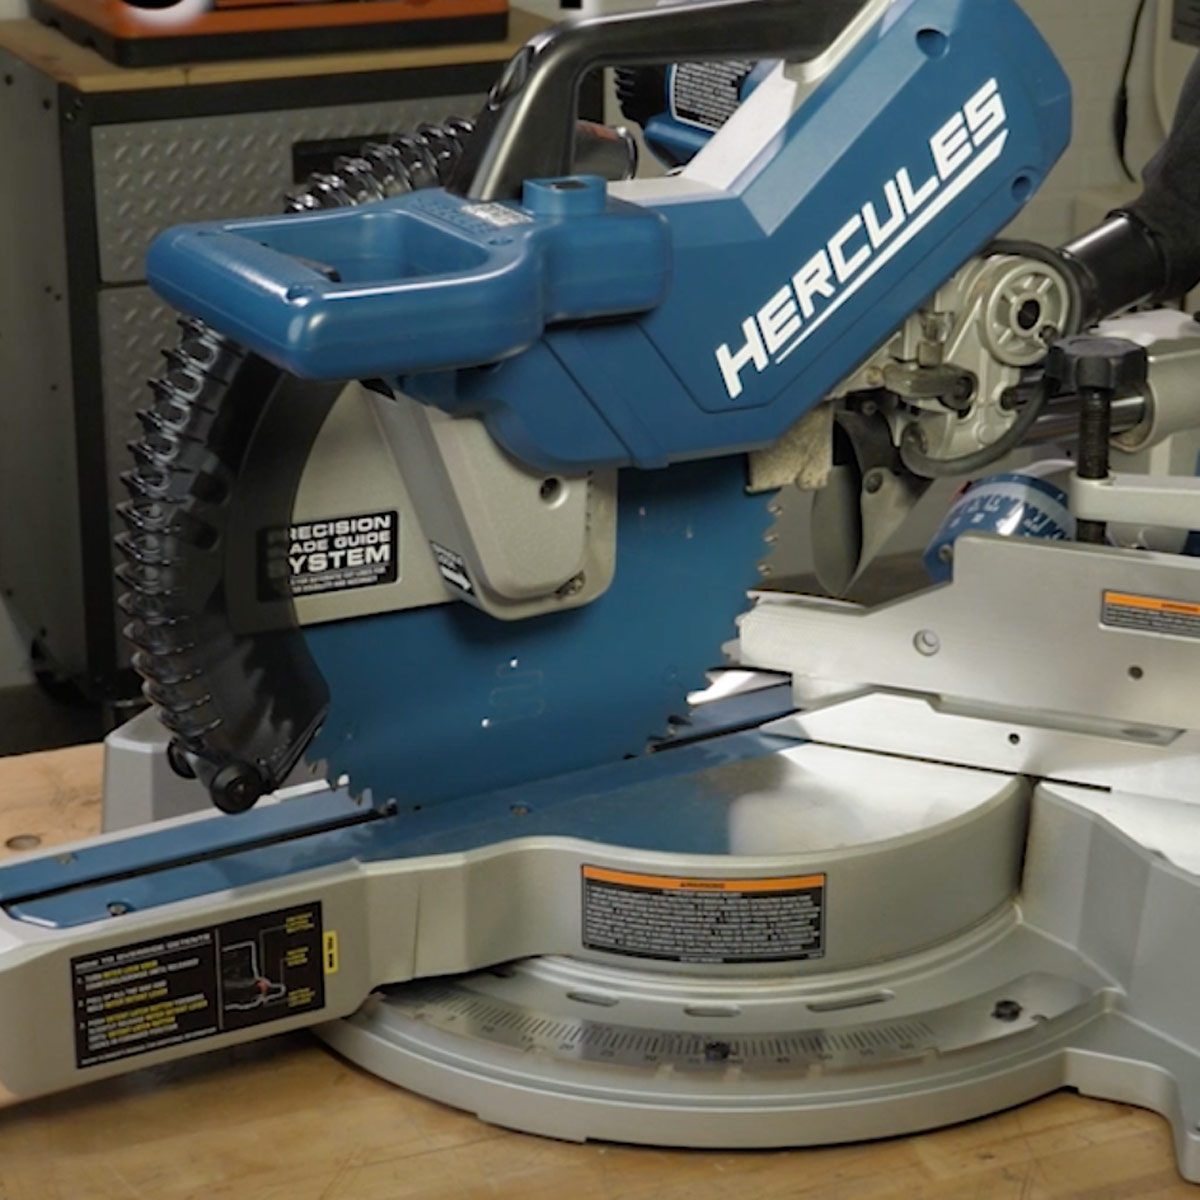 Our Favorite Sliding Miter Saw from Harbor Freight | Family Handyman